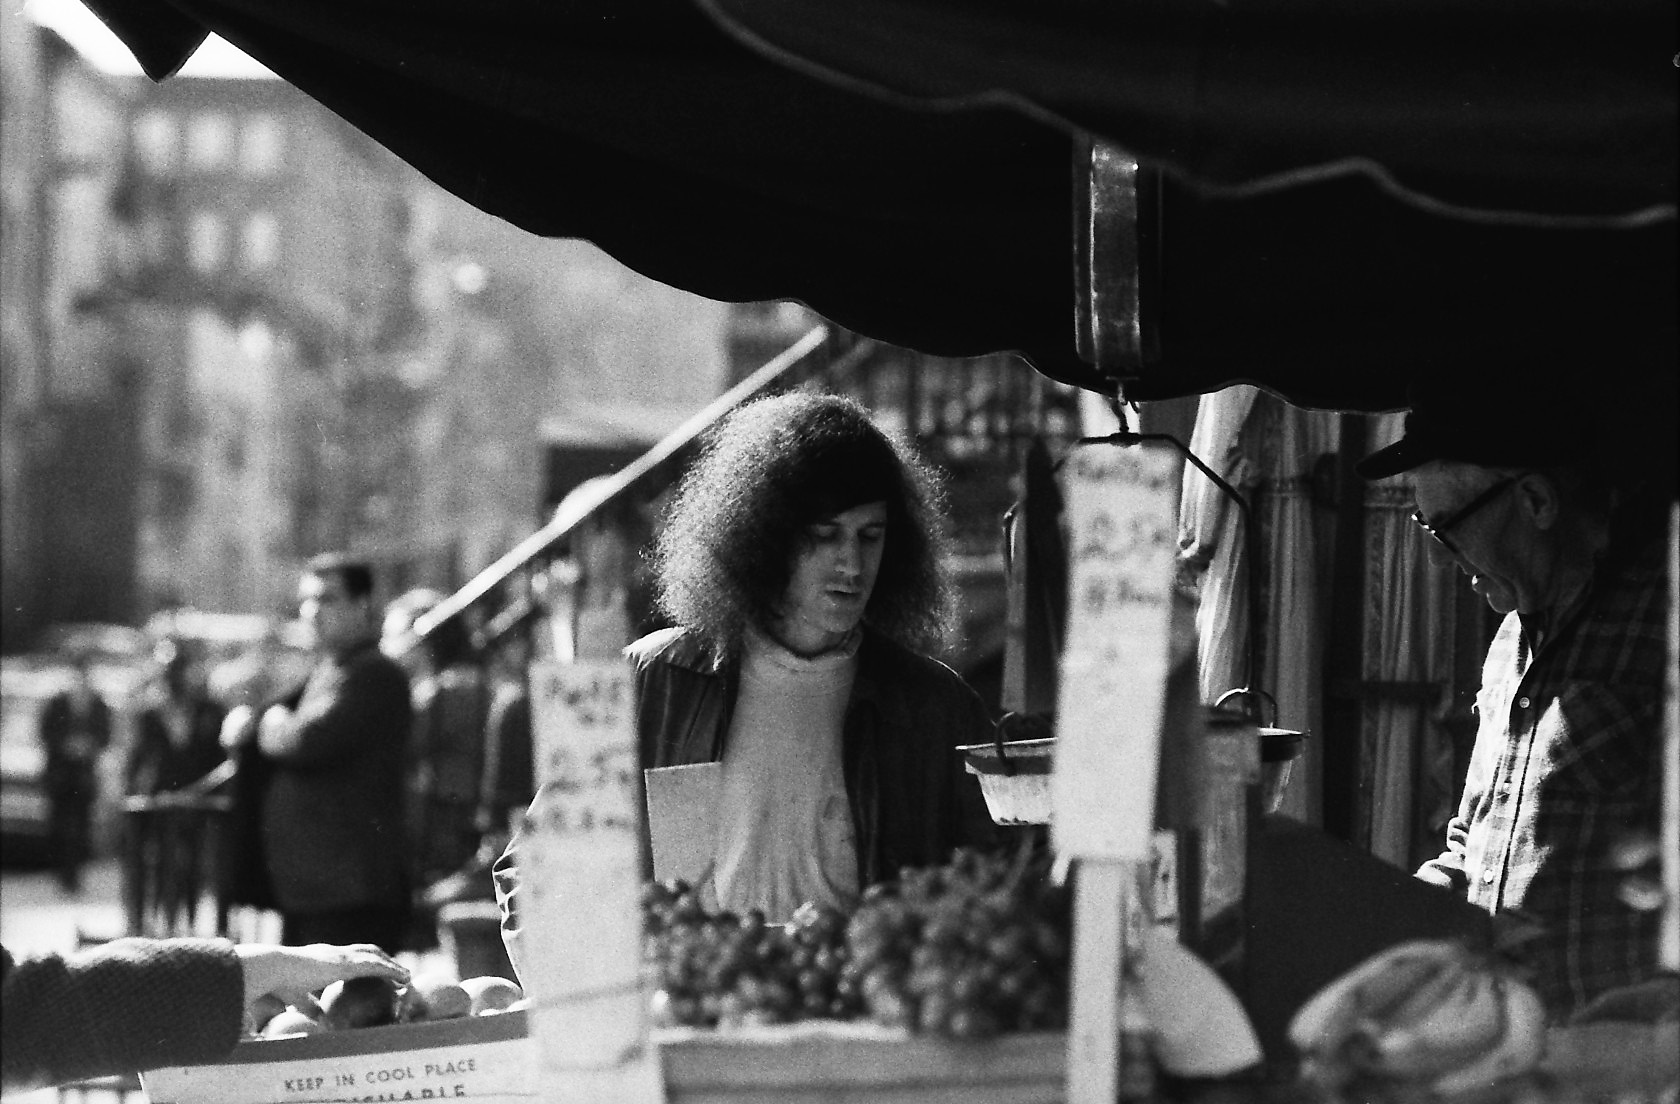 NYC38 Fruit stand, E 80s